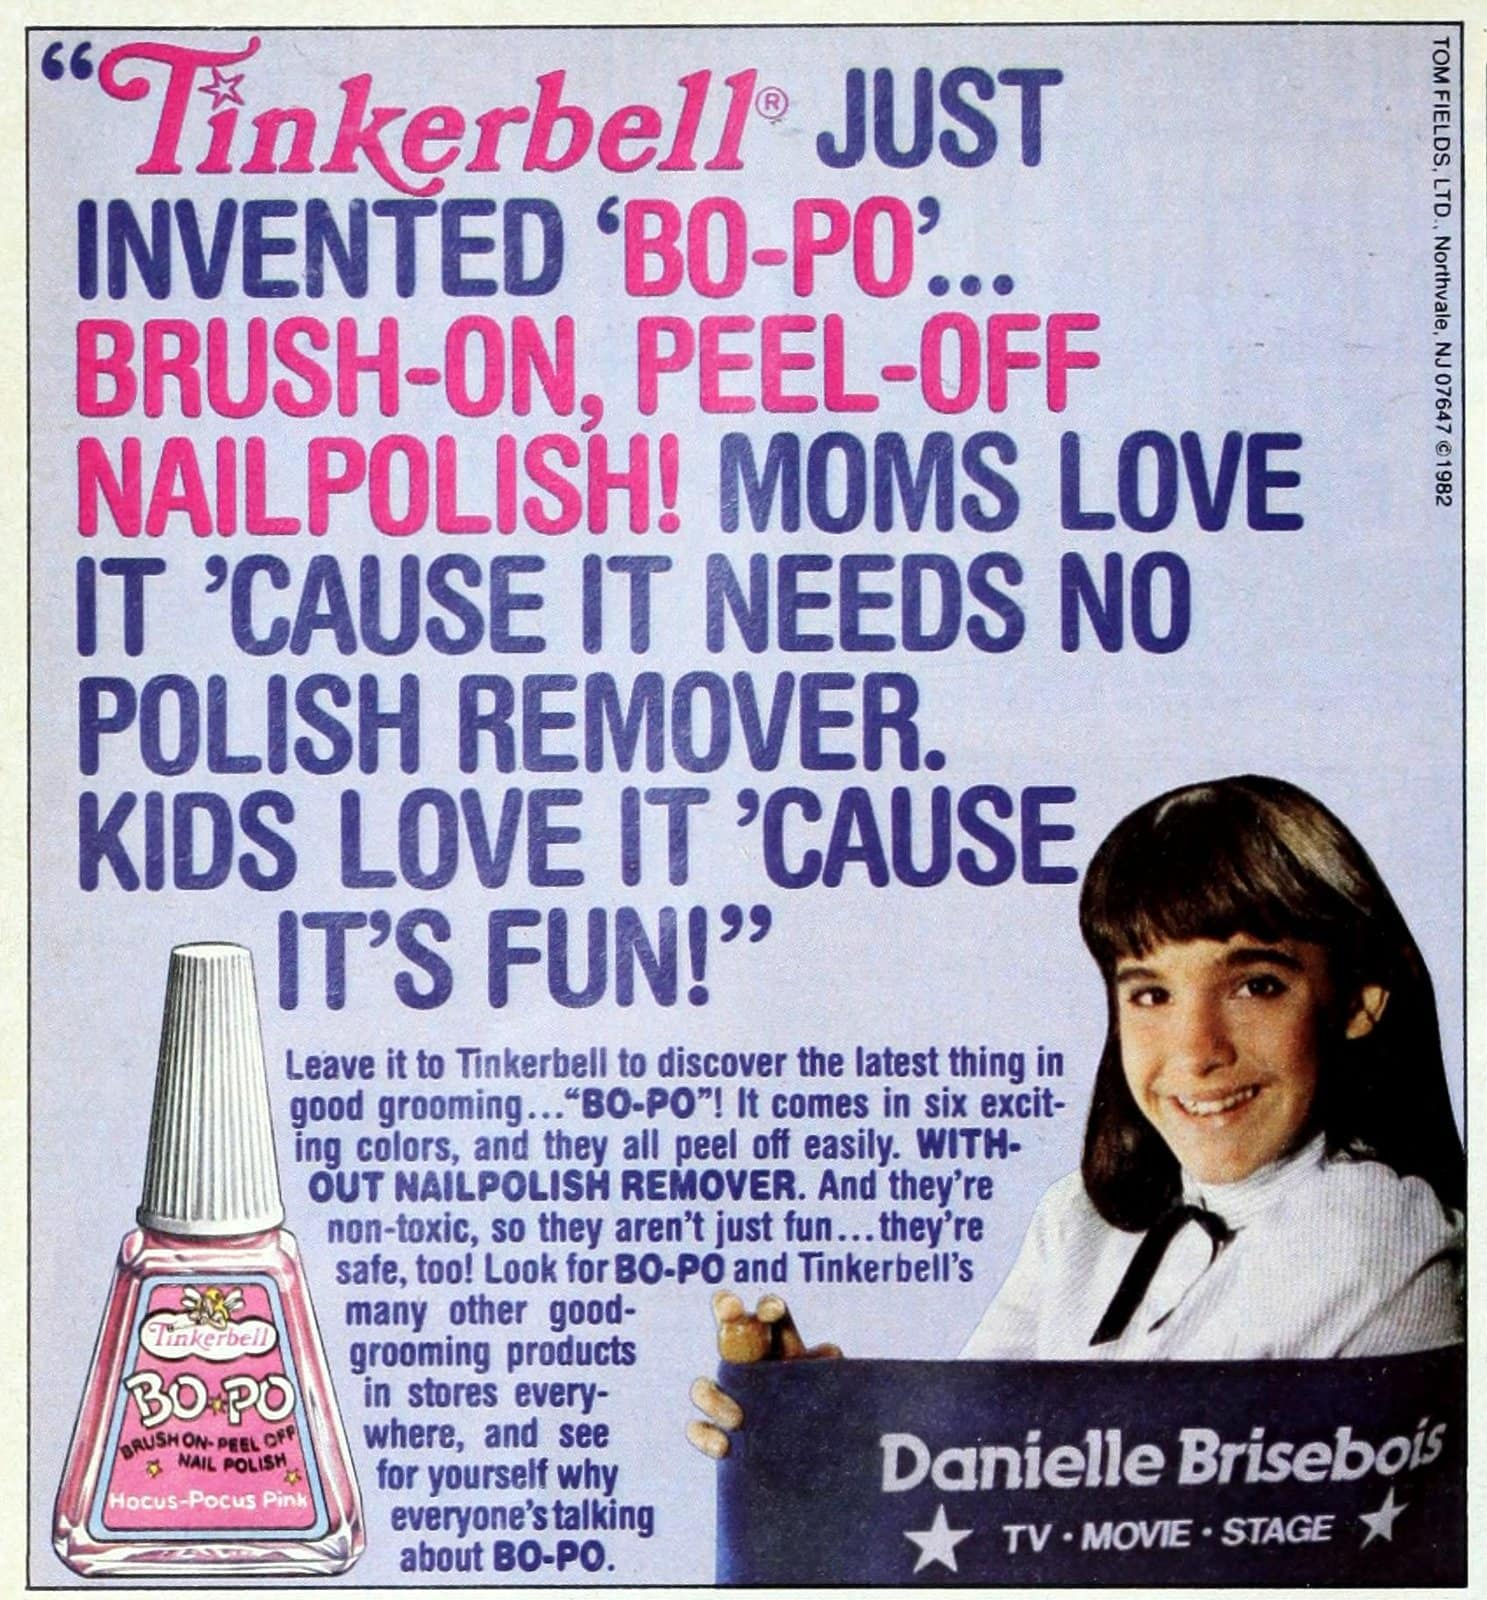 Retro Tinkerbell BO-PO Brush-on, peel-off nail polish with Danielle Brisebois (1982)